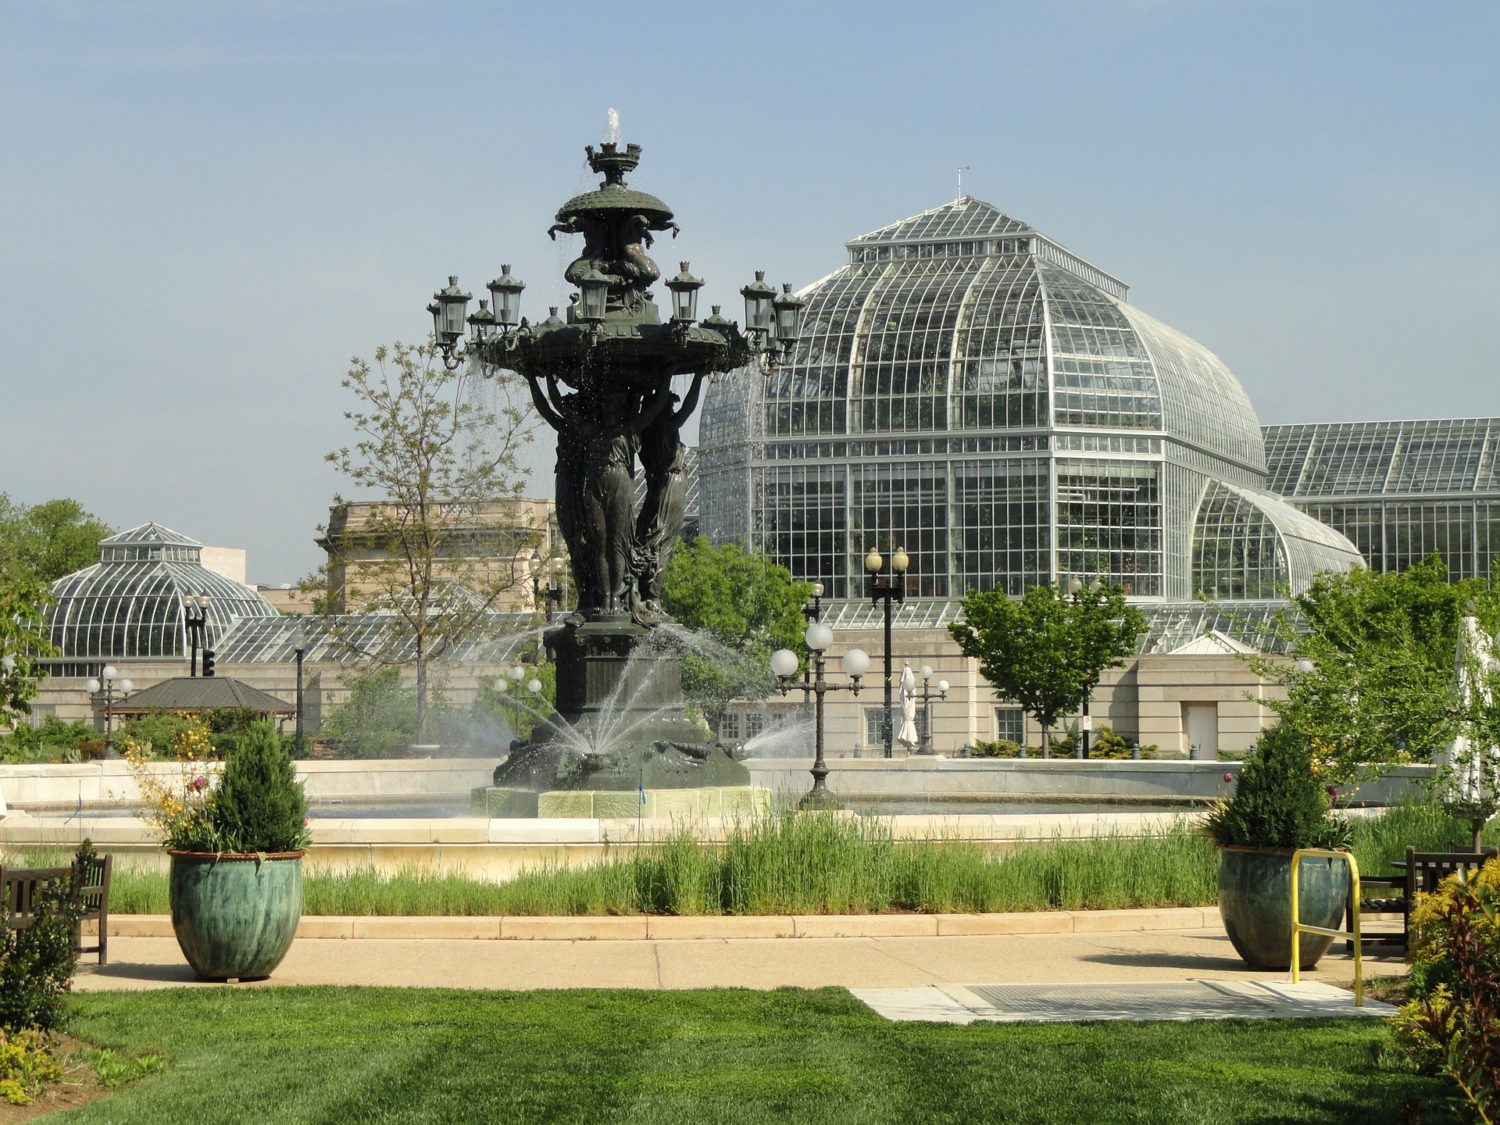 Bartholdi Fountain in United States Botanic Garden, on the grounds of the United States Capitol, Washington D.C.